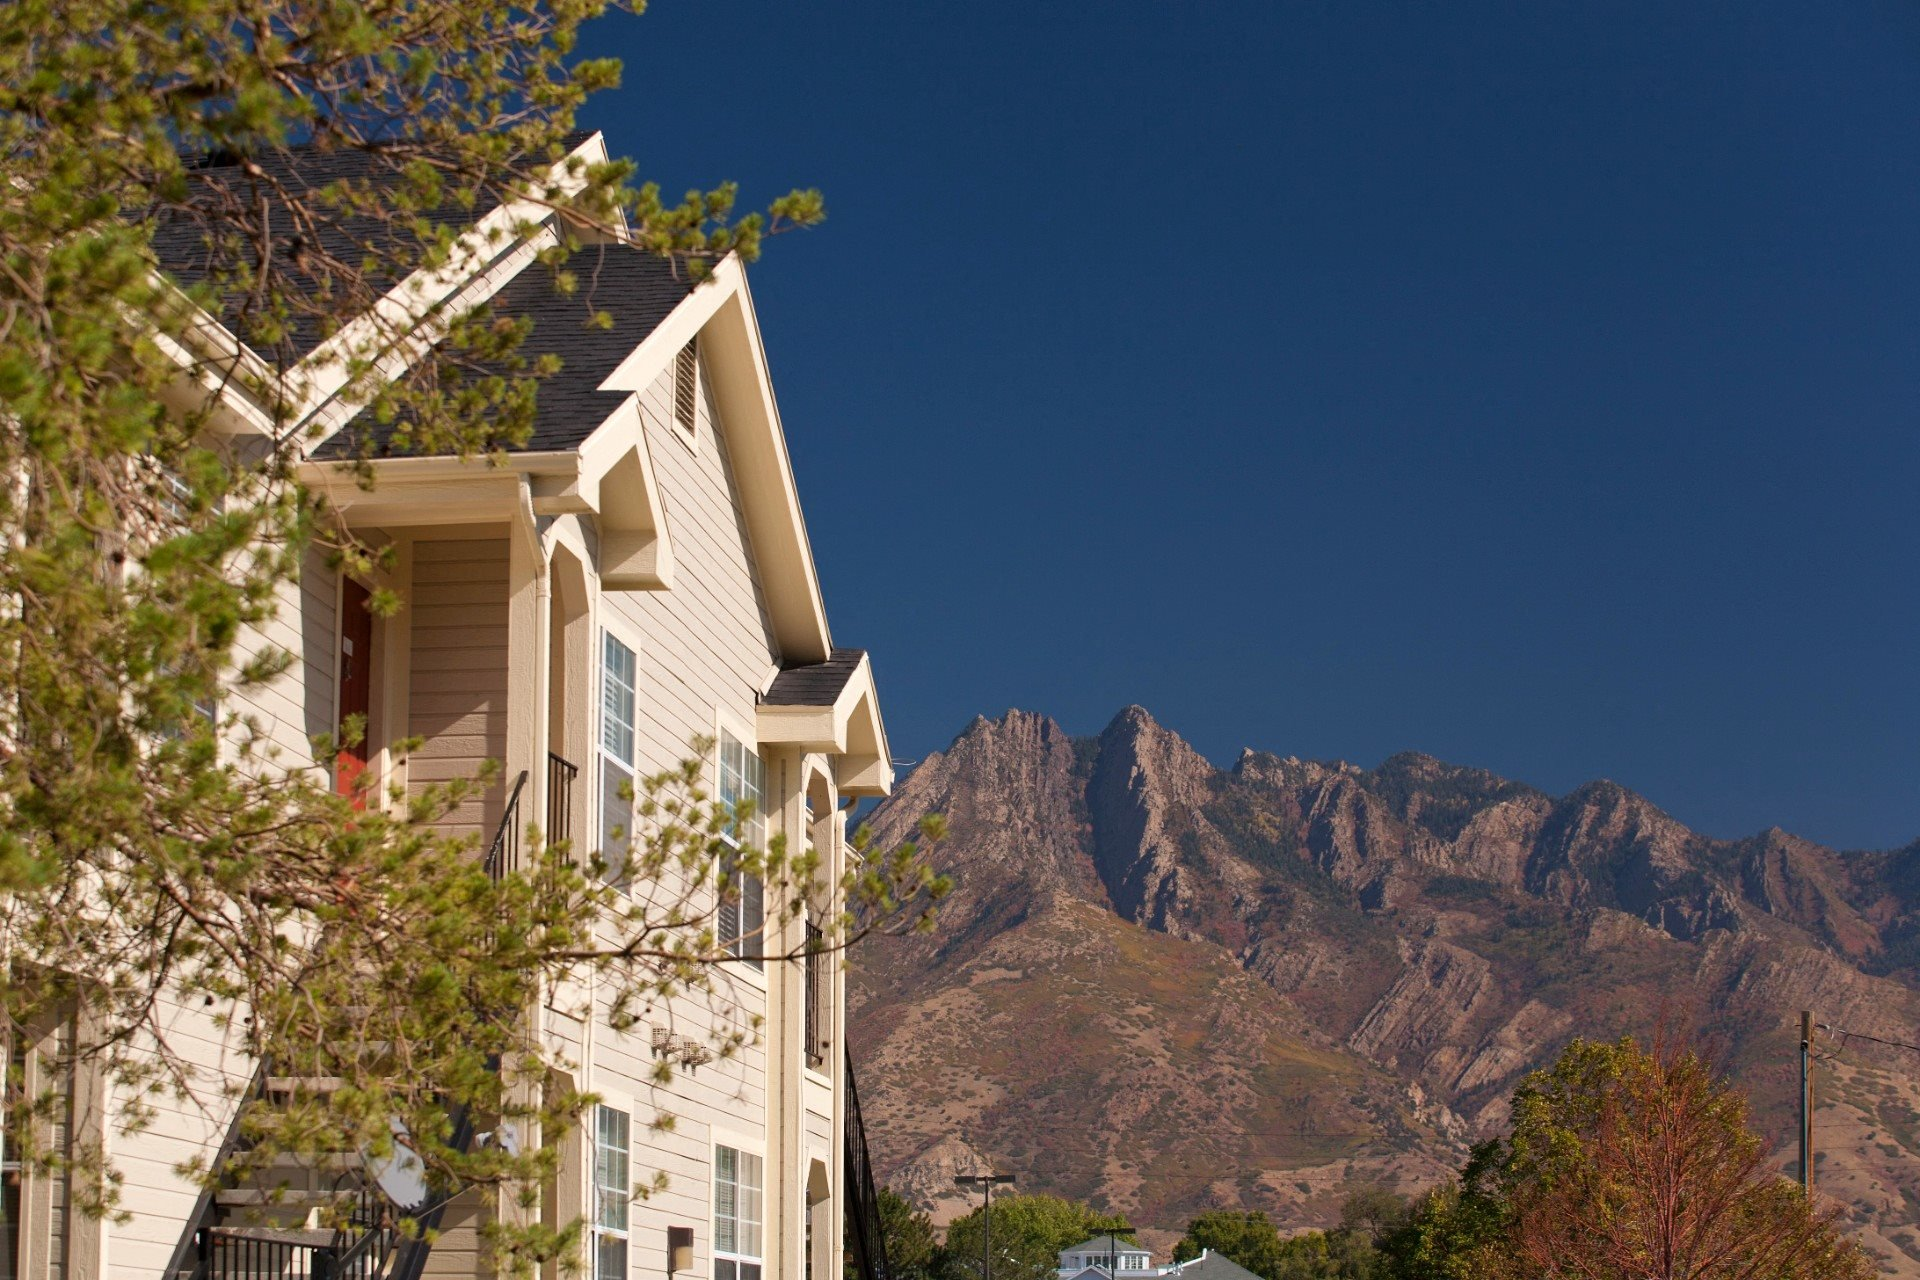 Building Exterior  with Mountains in the Background